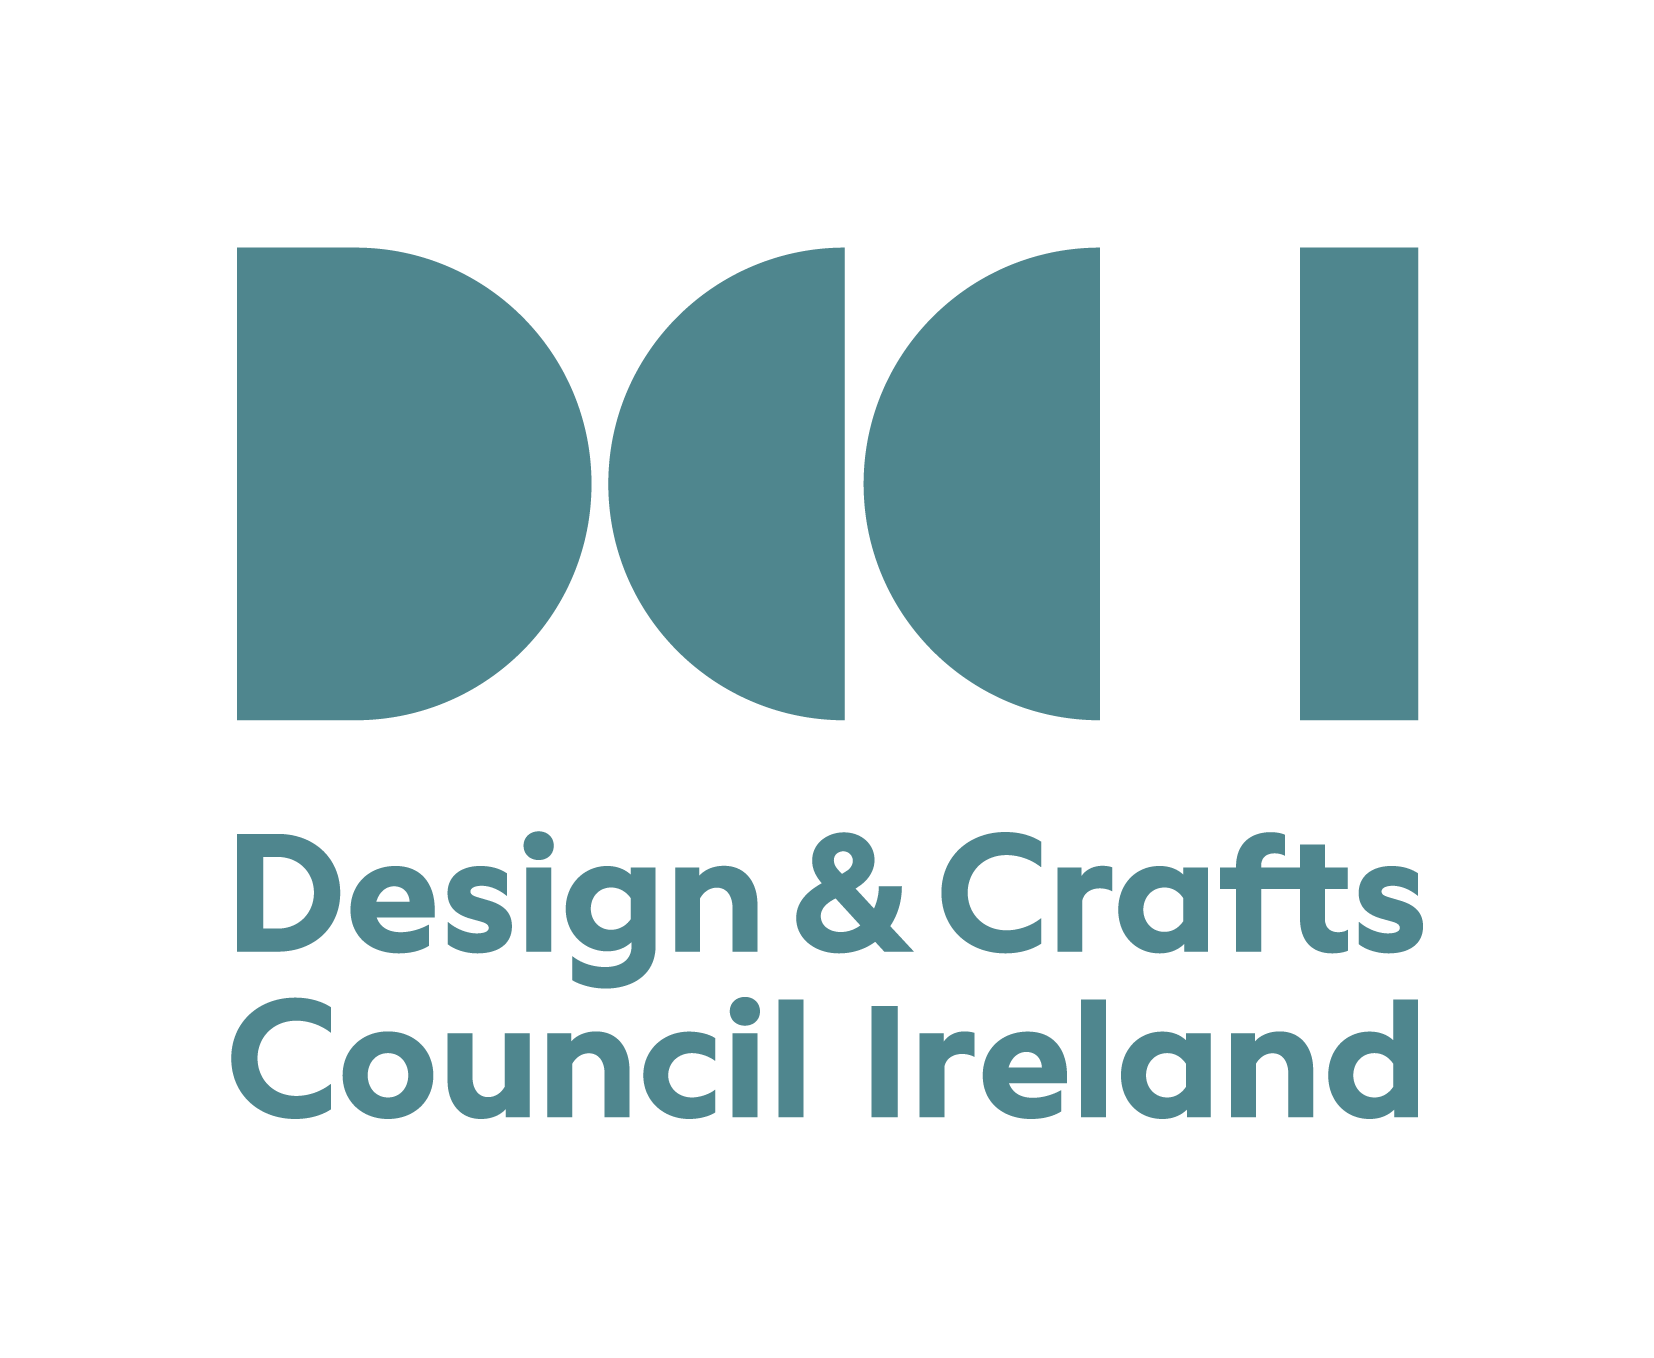 The Design & Crafts Council of Ireland (DCCoI)